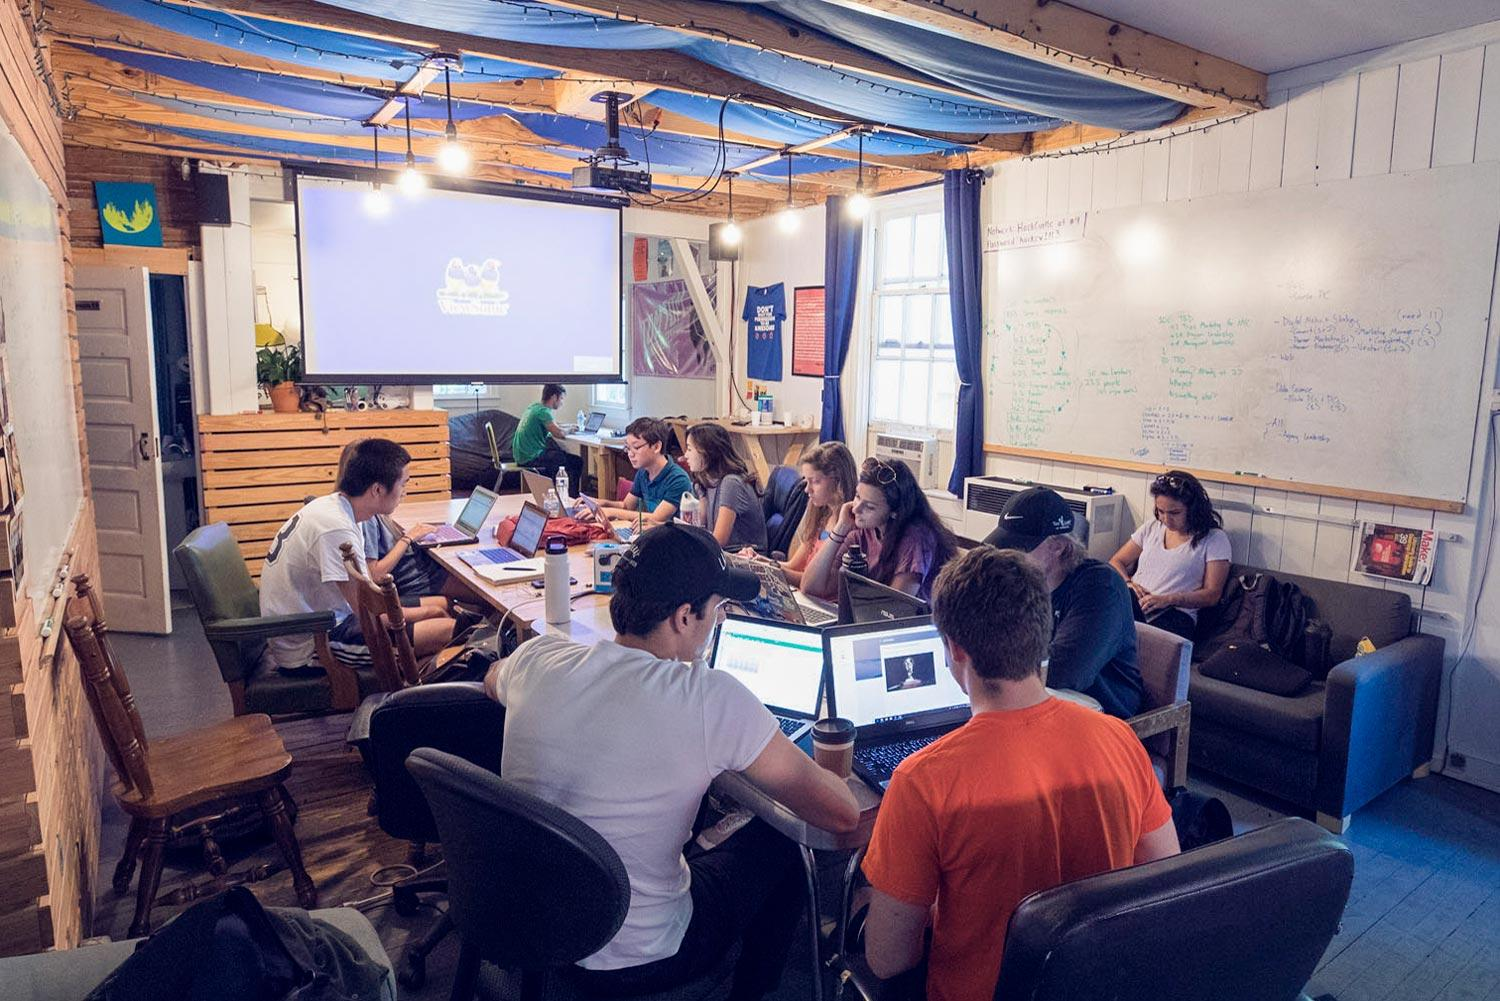 HackCville's new Elliewood Fellowships support 11 recent UVA graduates as they pursue their start-ups in Charlottesville's rich entrepreneurial ecosystem.